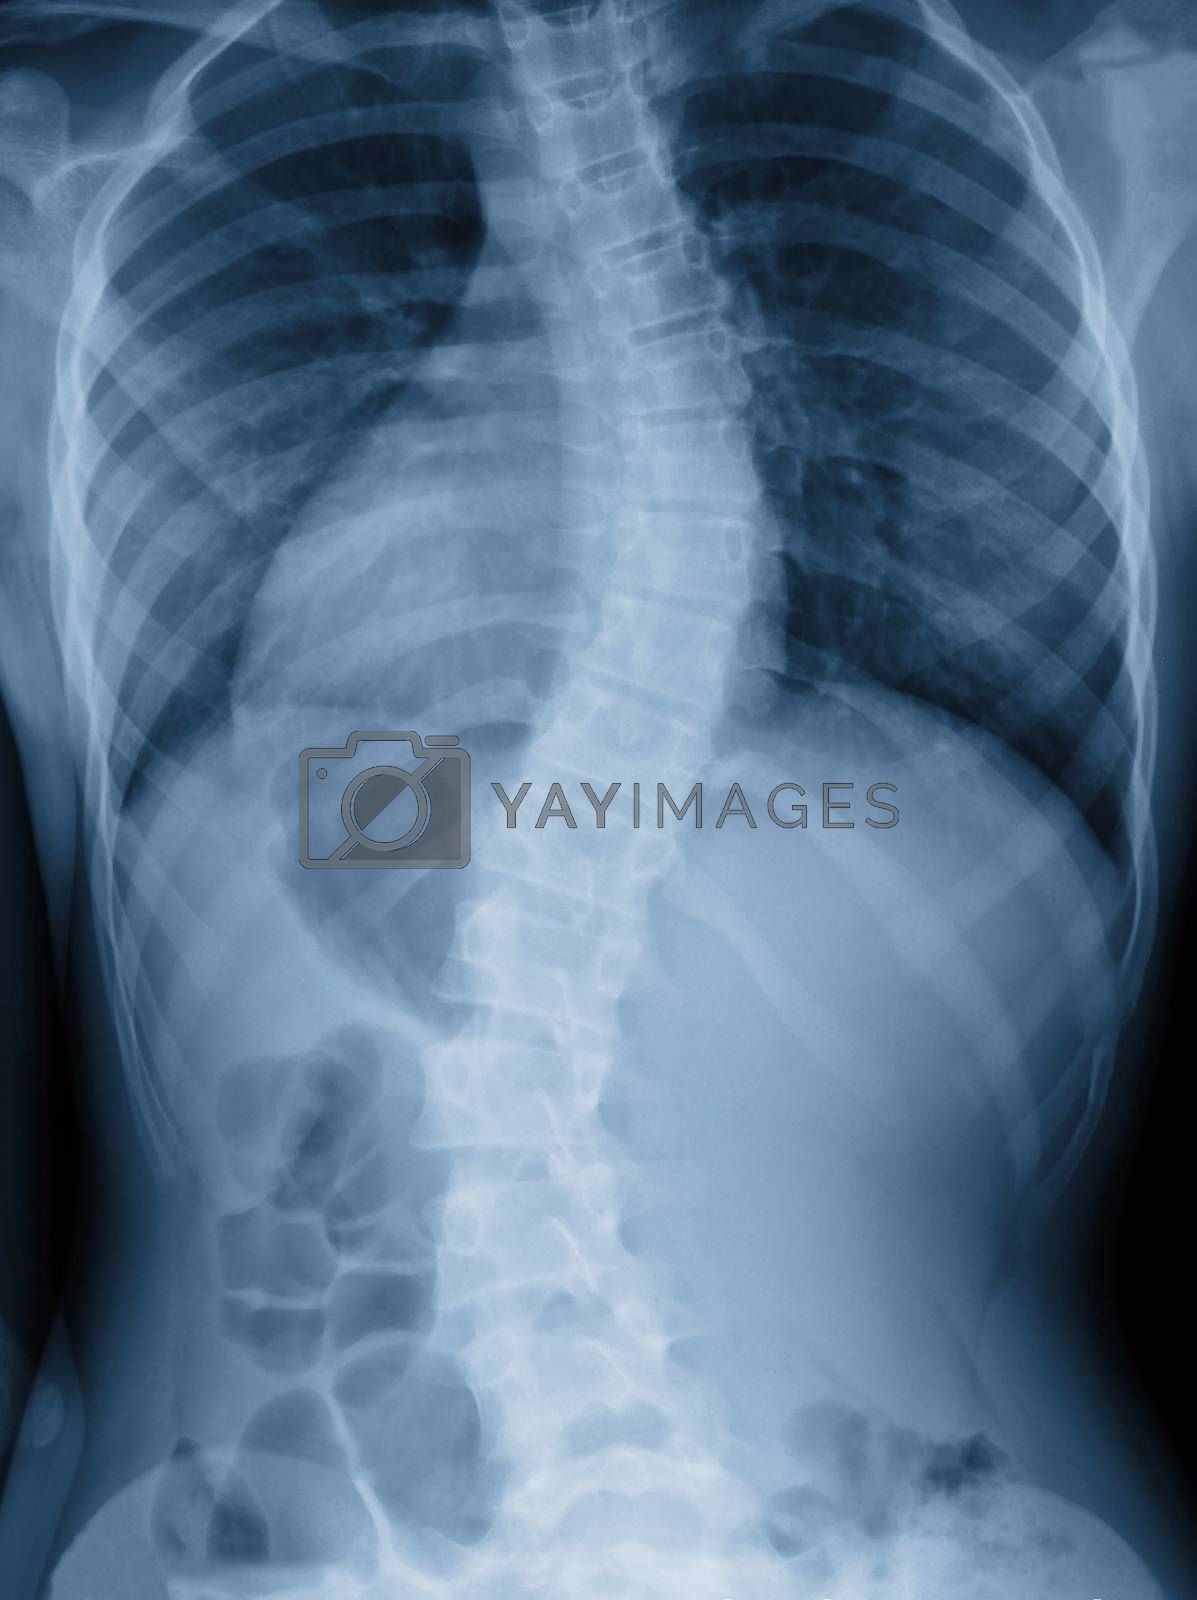 Scoliosis film x-ray show spinal bend in teenager patient